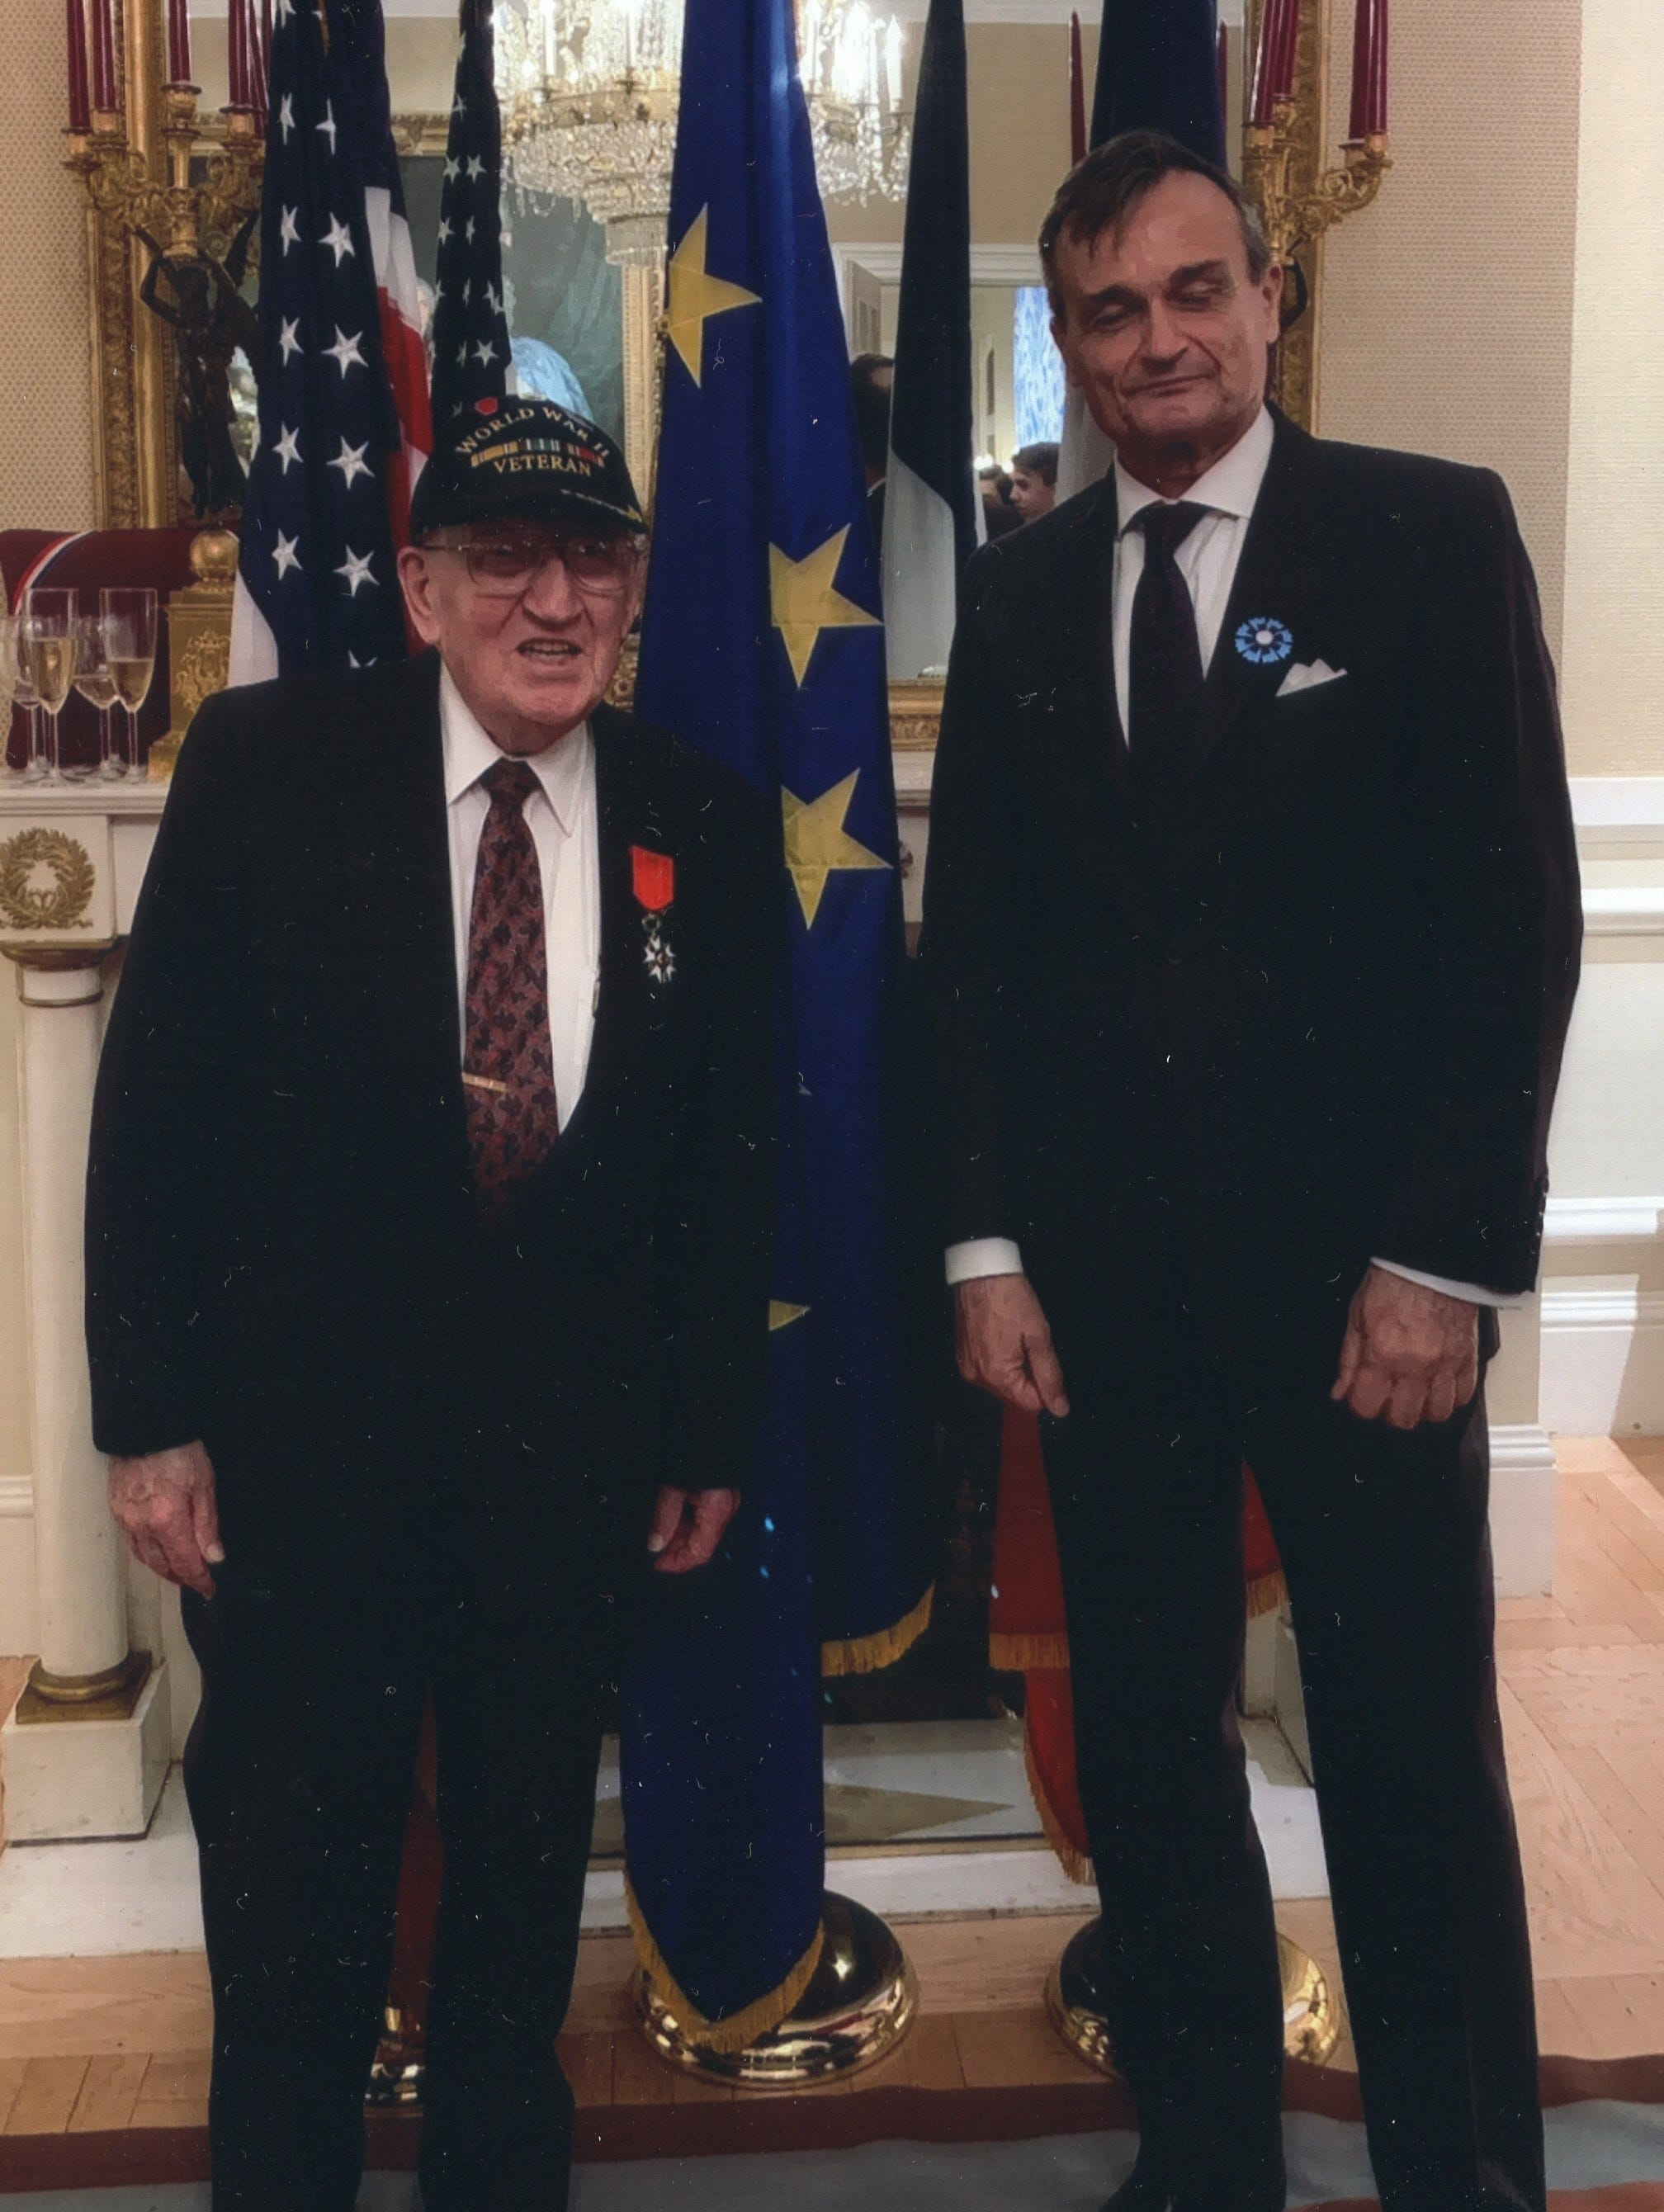 Harold Angle with the French Ambassador, Gerard Araud, at the Legion of Honor ceremony in Washington D.C. on Nov. 8, 2018.